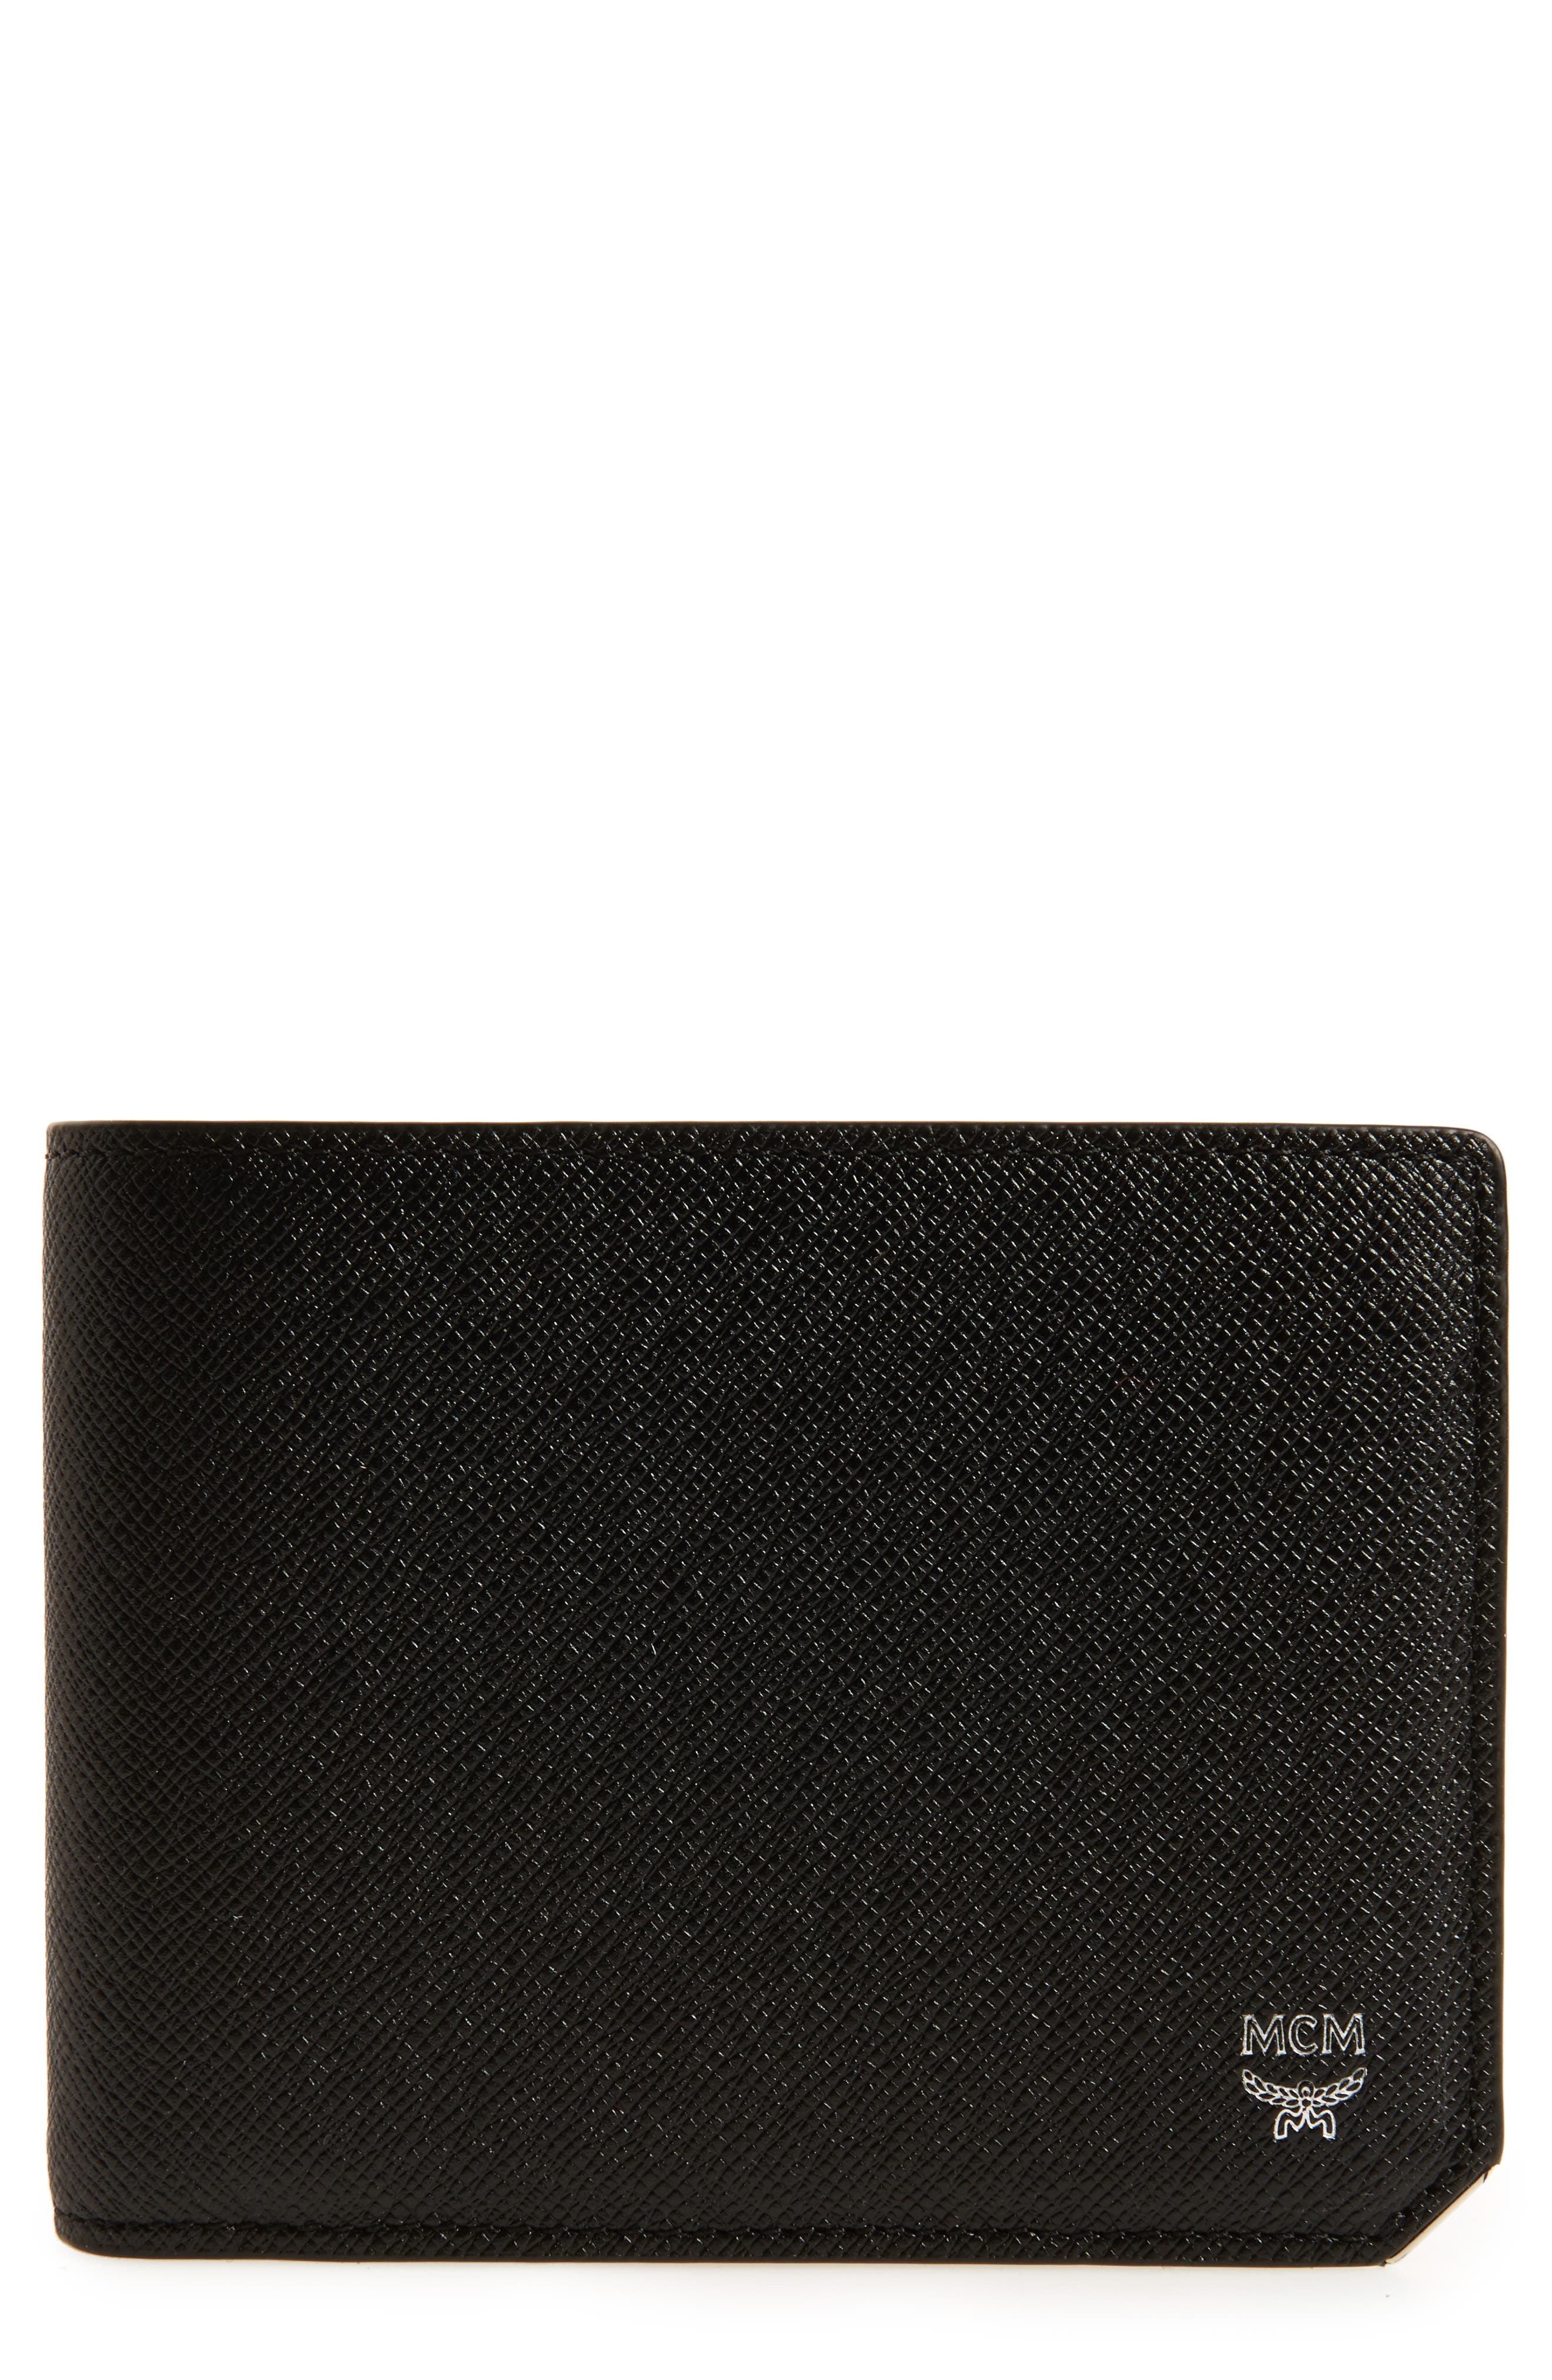 MCM New Bric Leather Billfold Wallet